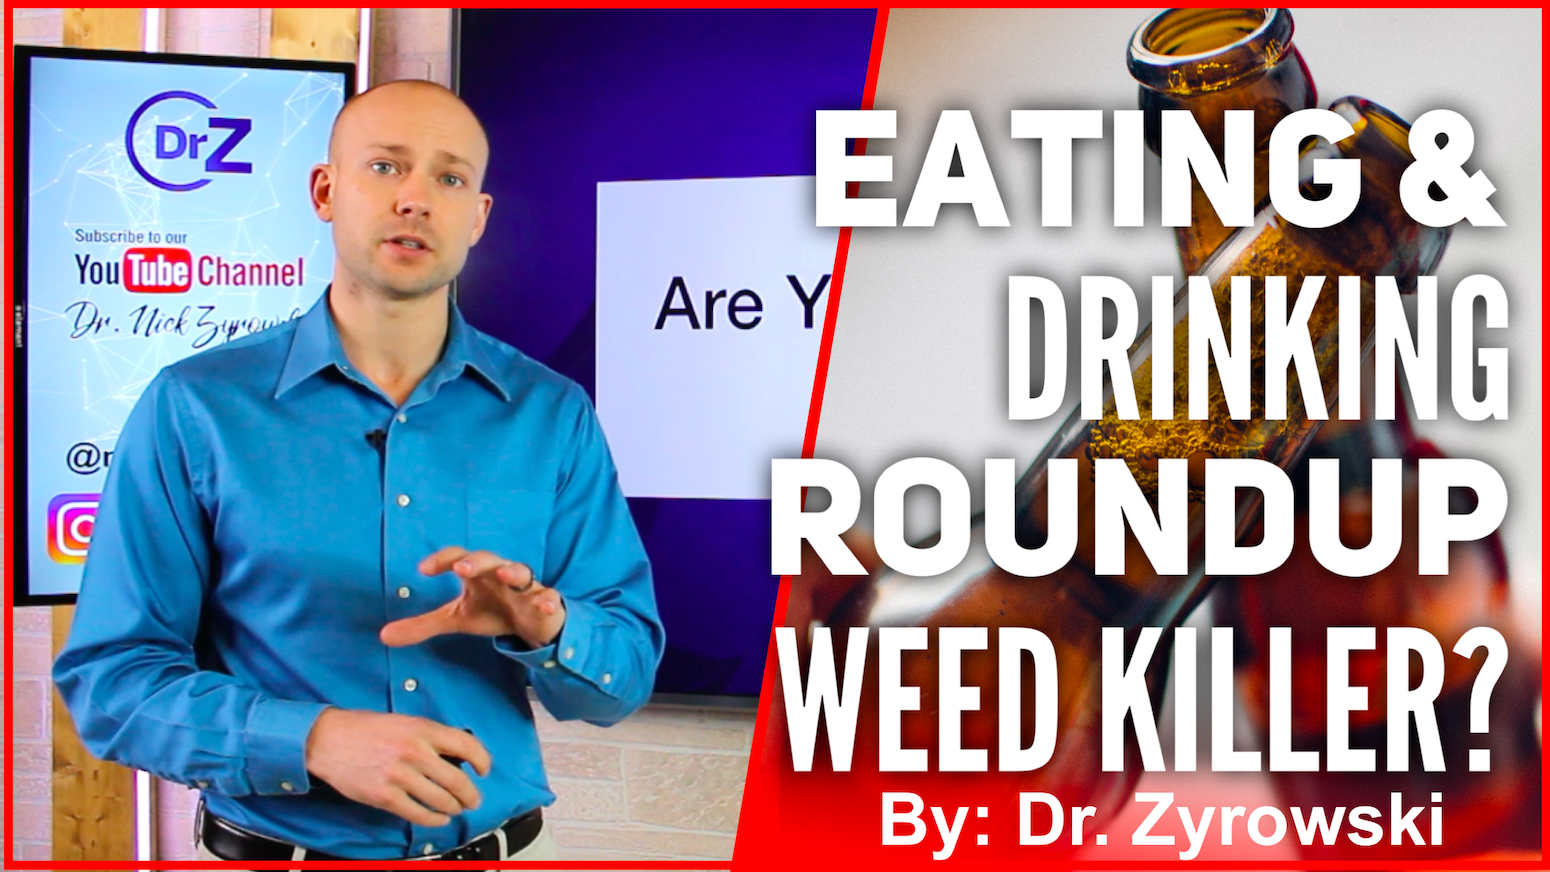 Drinking Roundup Weed Killer